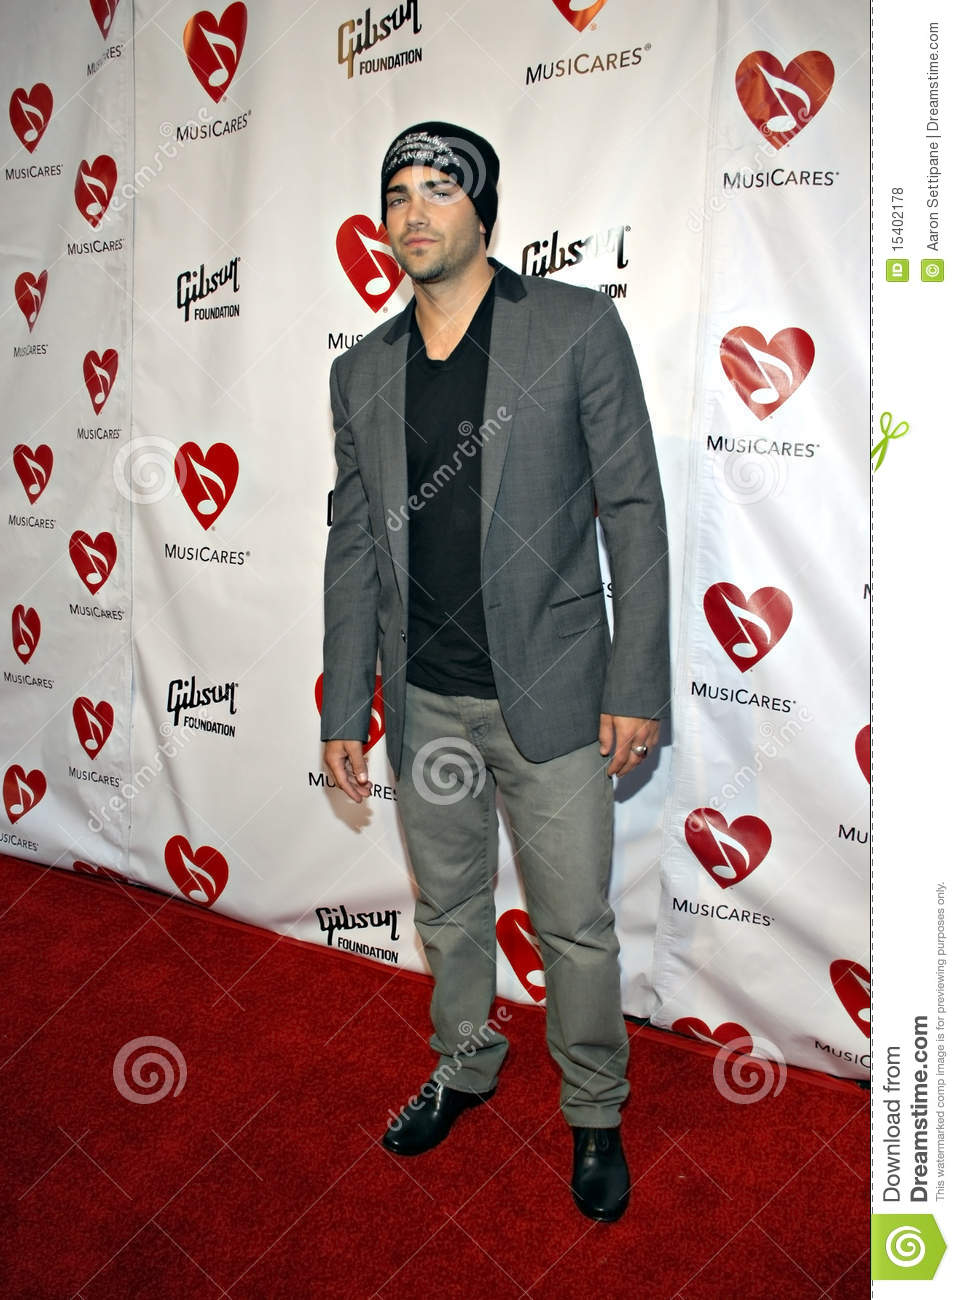 Jesse Metcalfe on the red carpet.